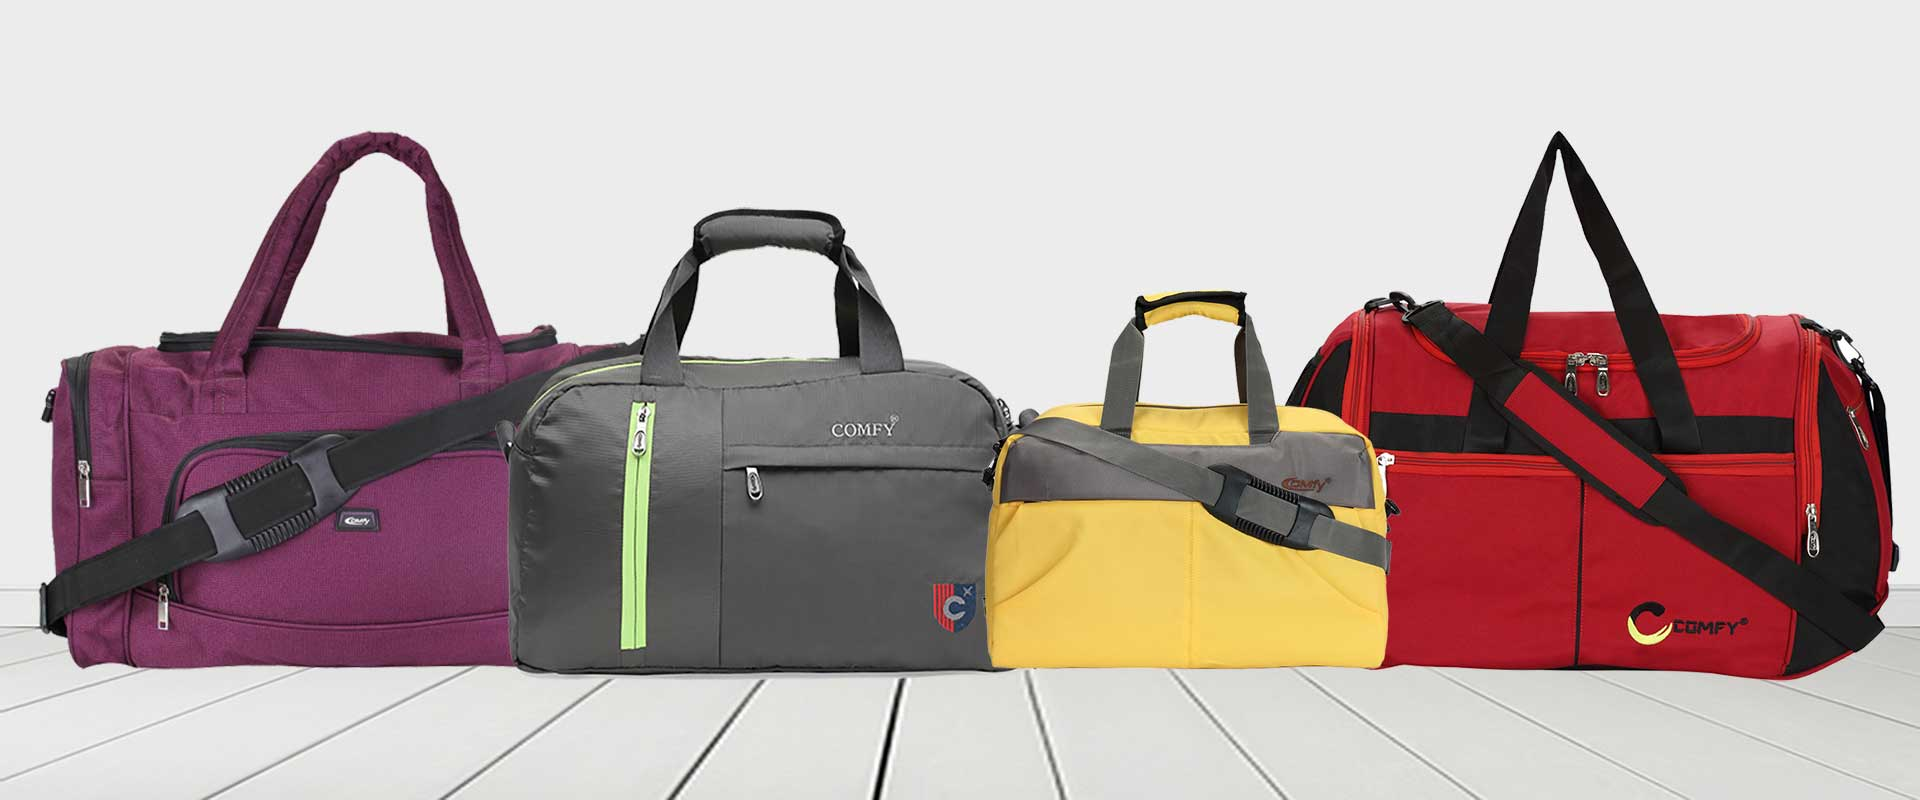 Designed with the trendy shape <br> <h2>Comfy Bags are highly innovative.</h2>